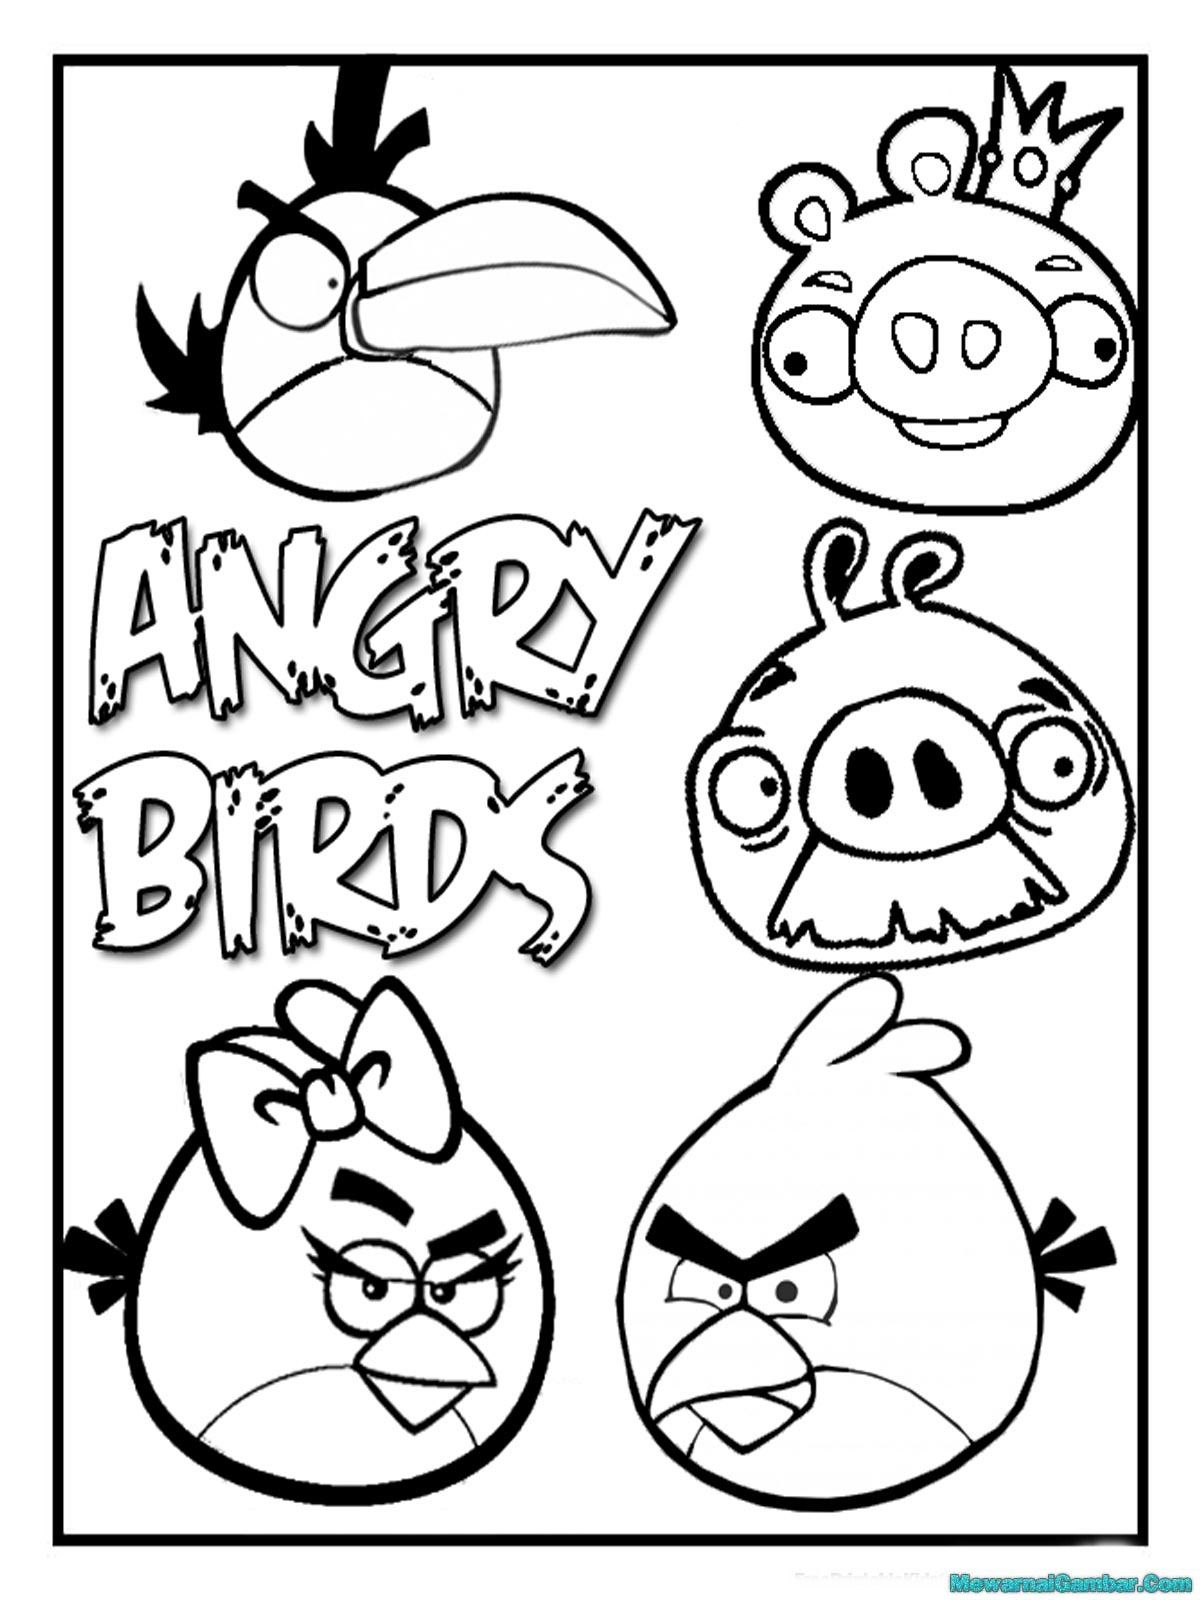 Mewarnai Gambar Angry Bird Places To Visit Colouring Pages